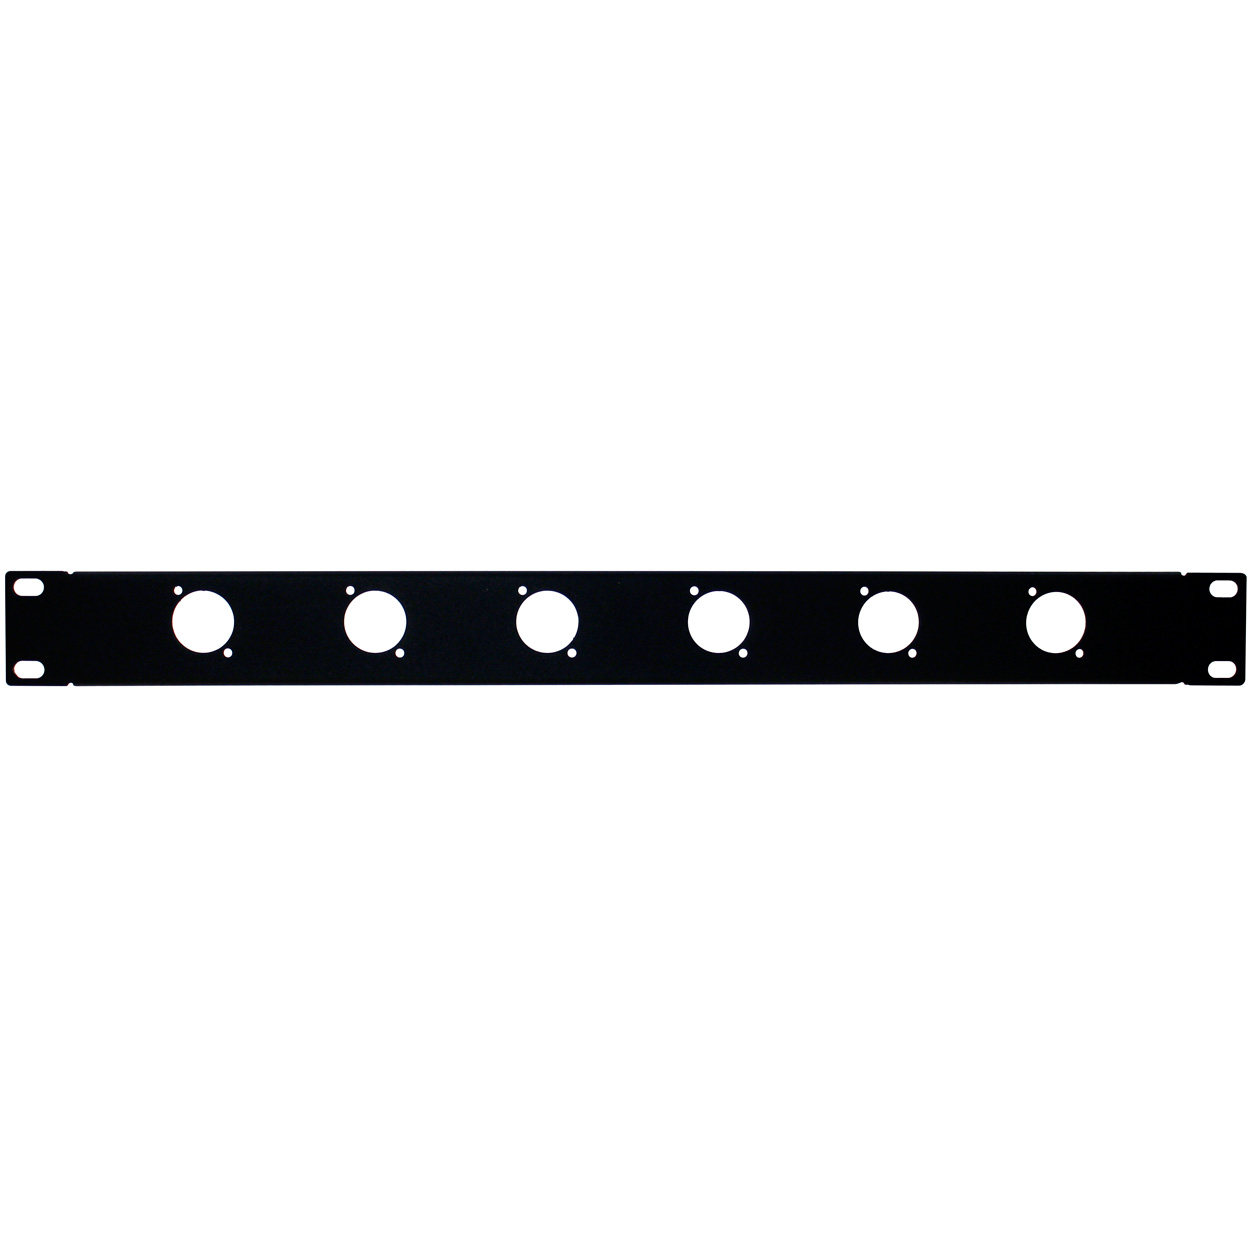 19 inch Unloaded Panel for 6 XLR, 1U - Black